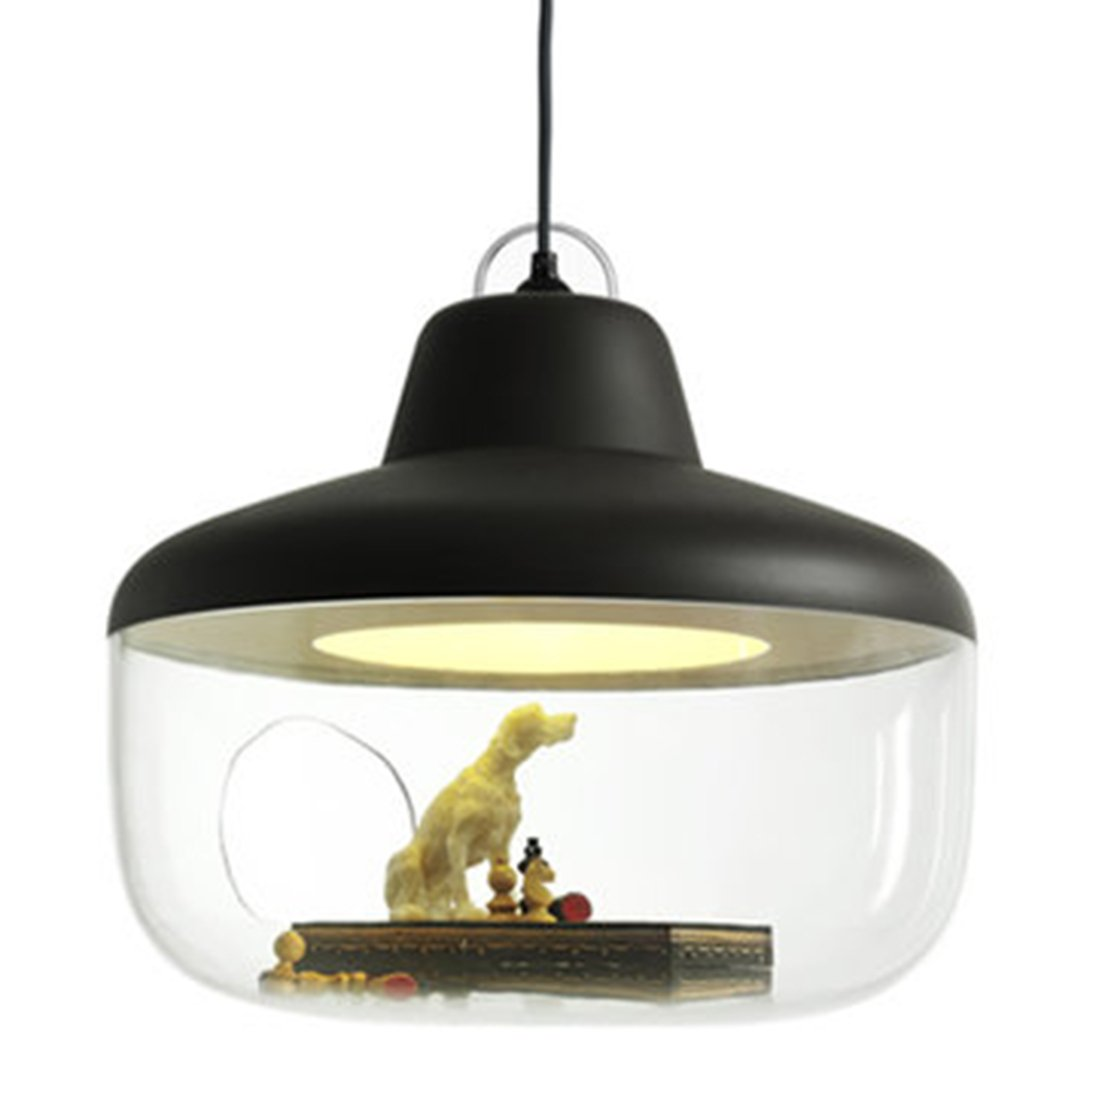 Chen Karlsson Favourite Things Hanglamp Zwart